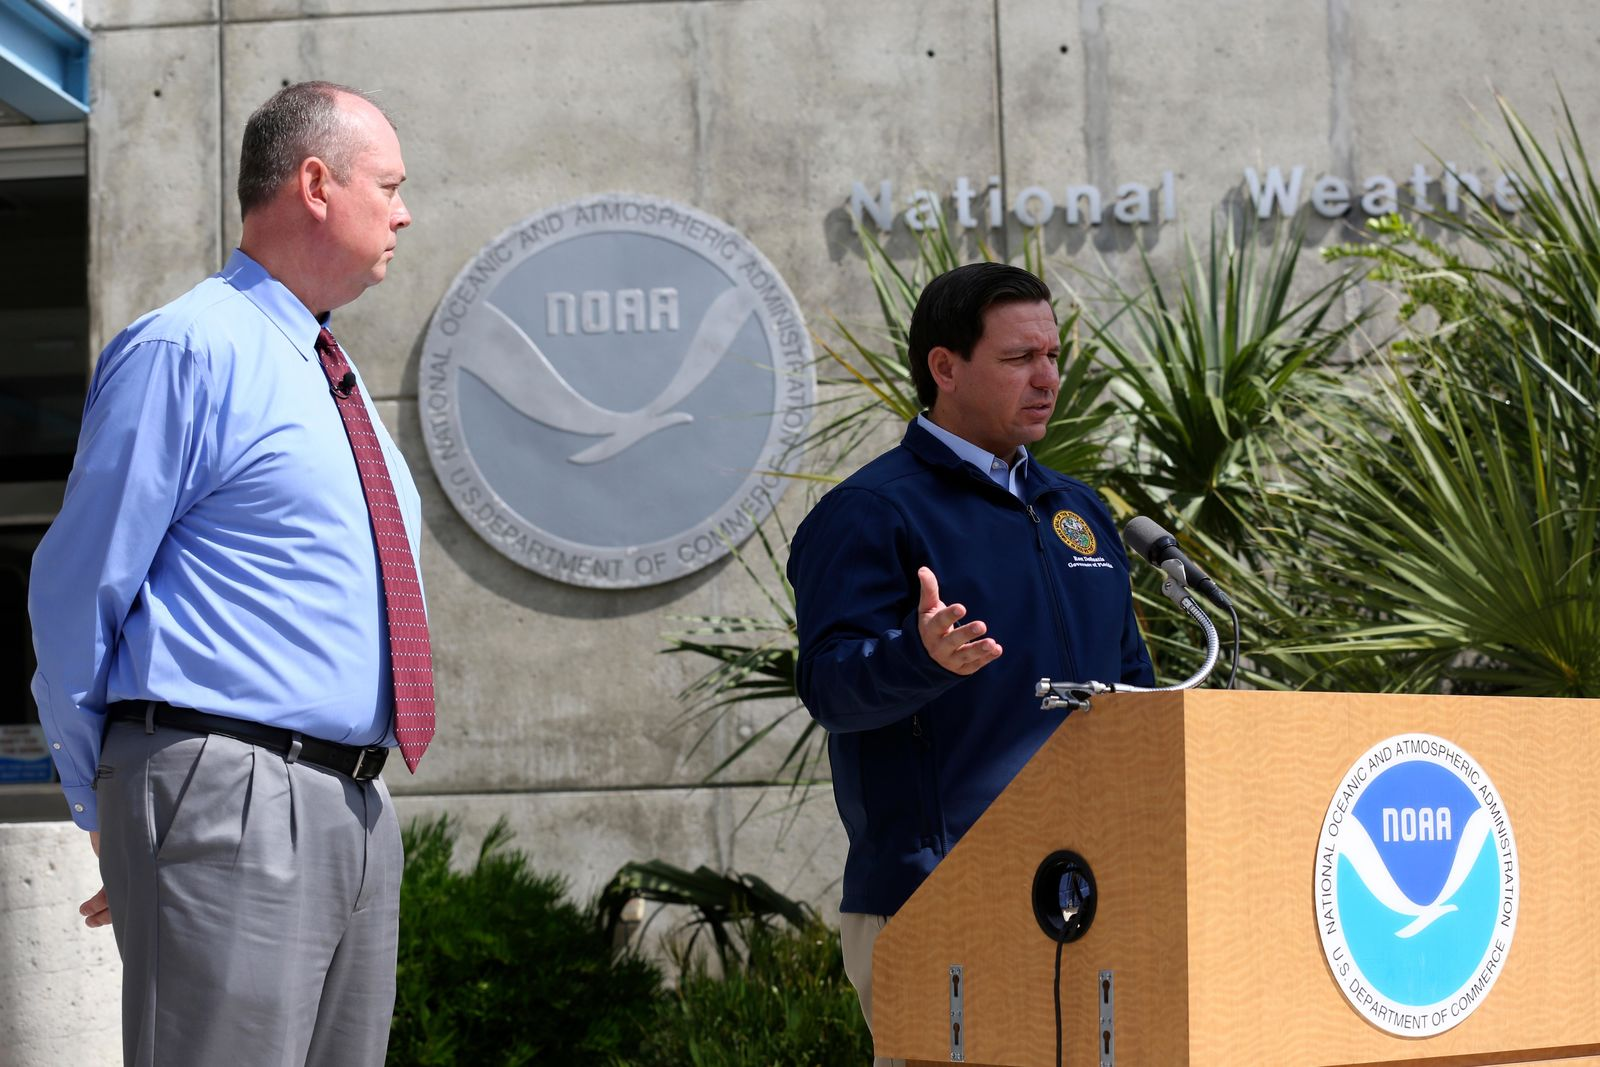 National Hurricane Center Director Ken Graham, left, looks on as Florida Gov. Ron DeSantis speaks about Tropical Storm Dorian outside of the the National Hurricane Center, Thursday, Aug. 29, 2019, in Miami. (AP Photo/Lynne Sladky)